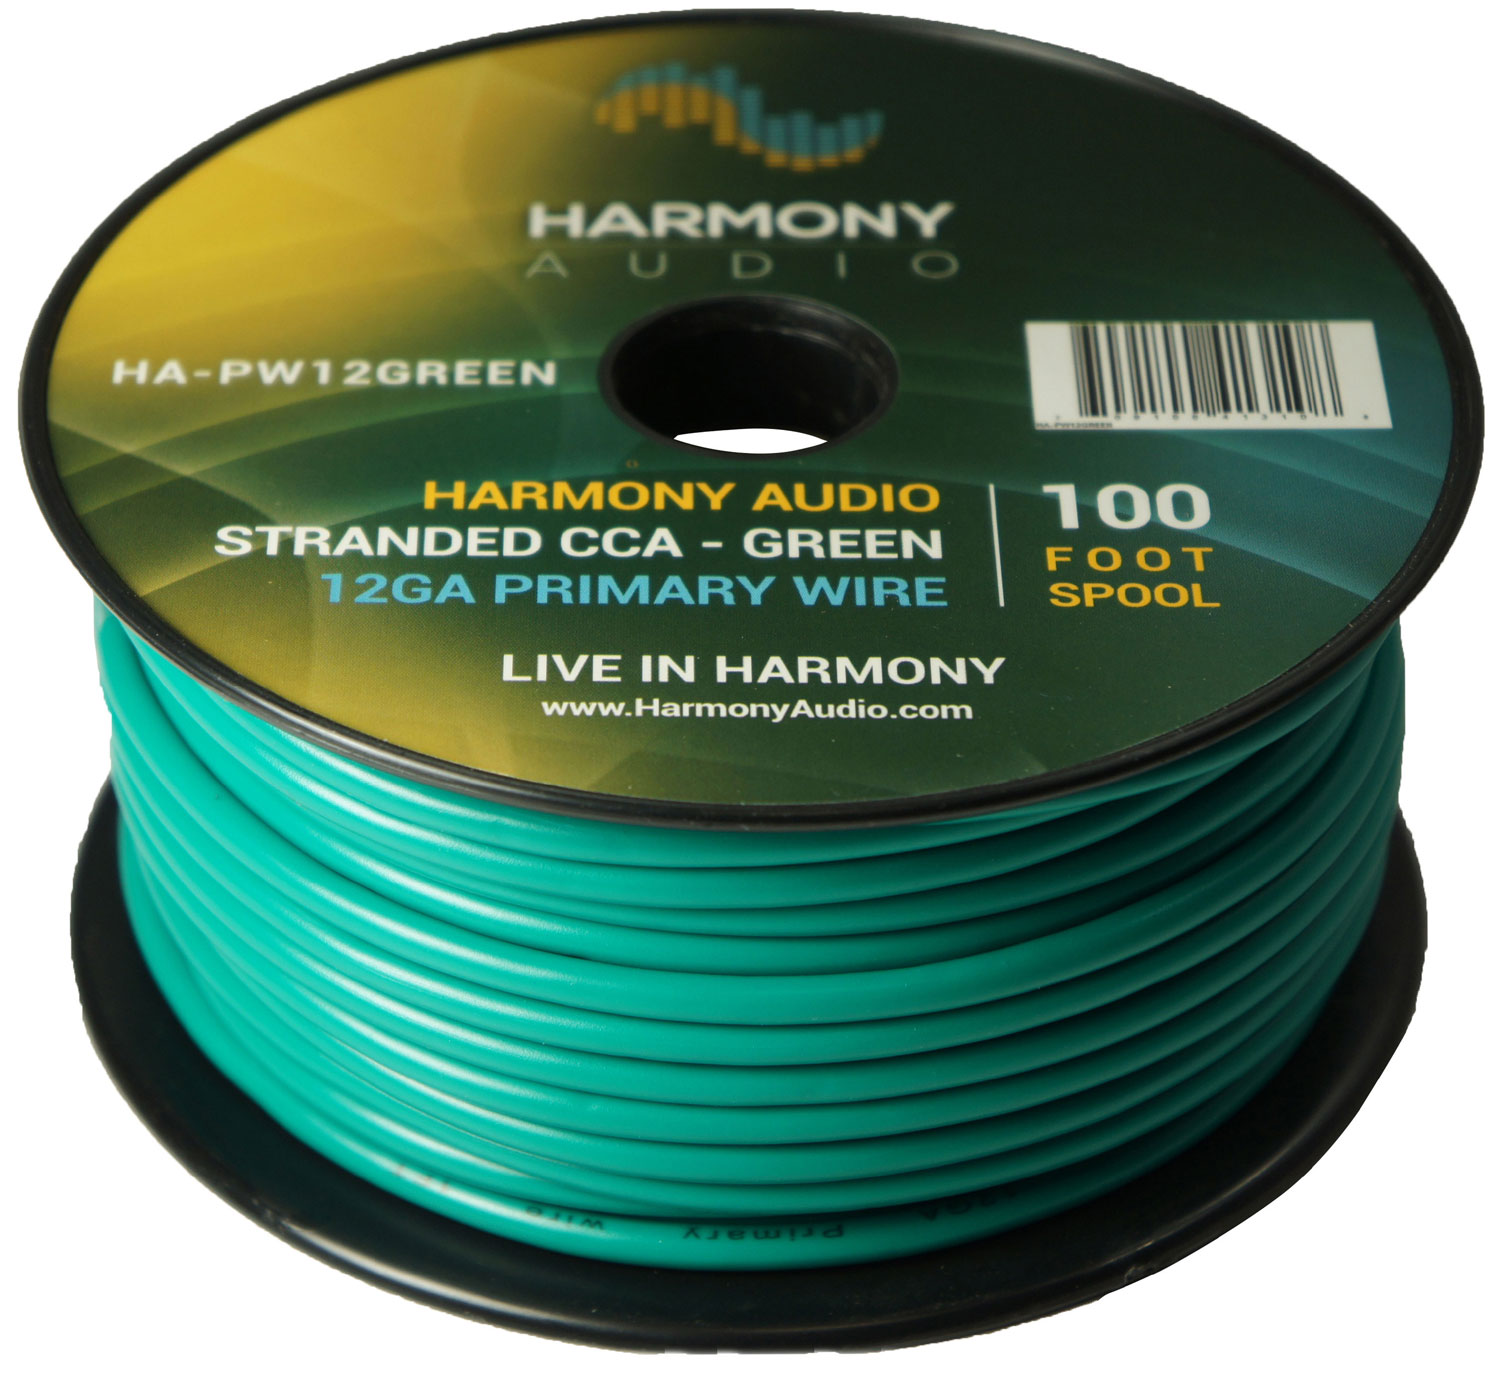 Harmony Audio HA-PW12GREEN Primary Single Conductor 12 Gauge Green Power or Ground Wire Roll 100 Feet Cable for Car Audio / Trailer / Model Train / Remote